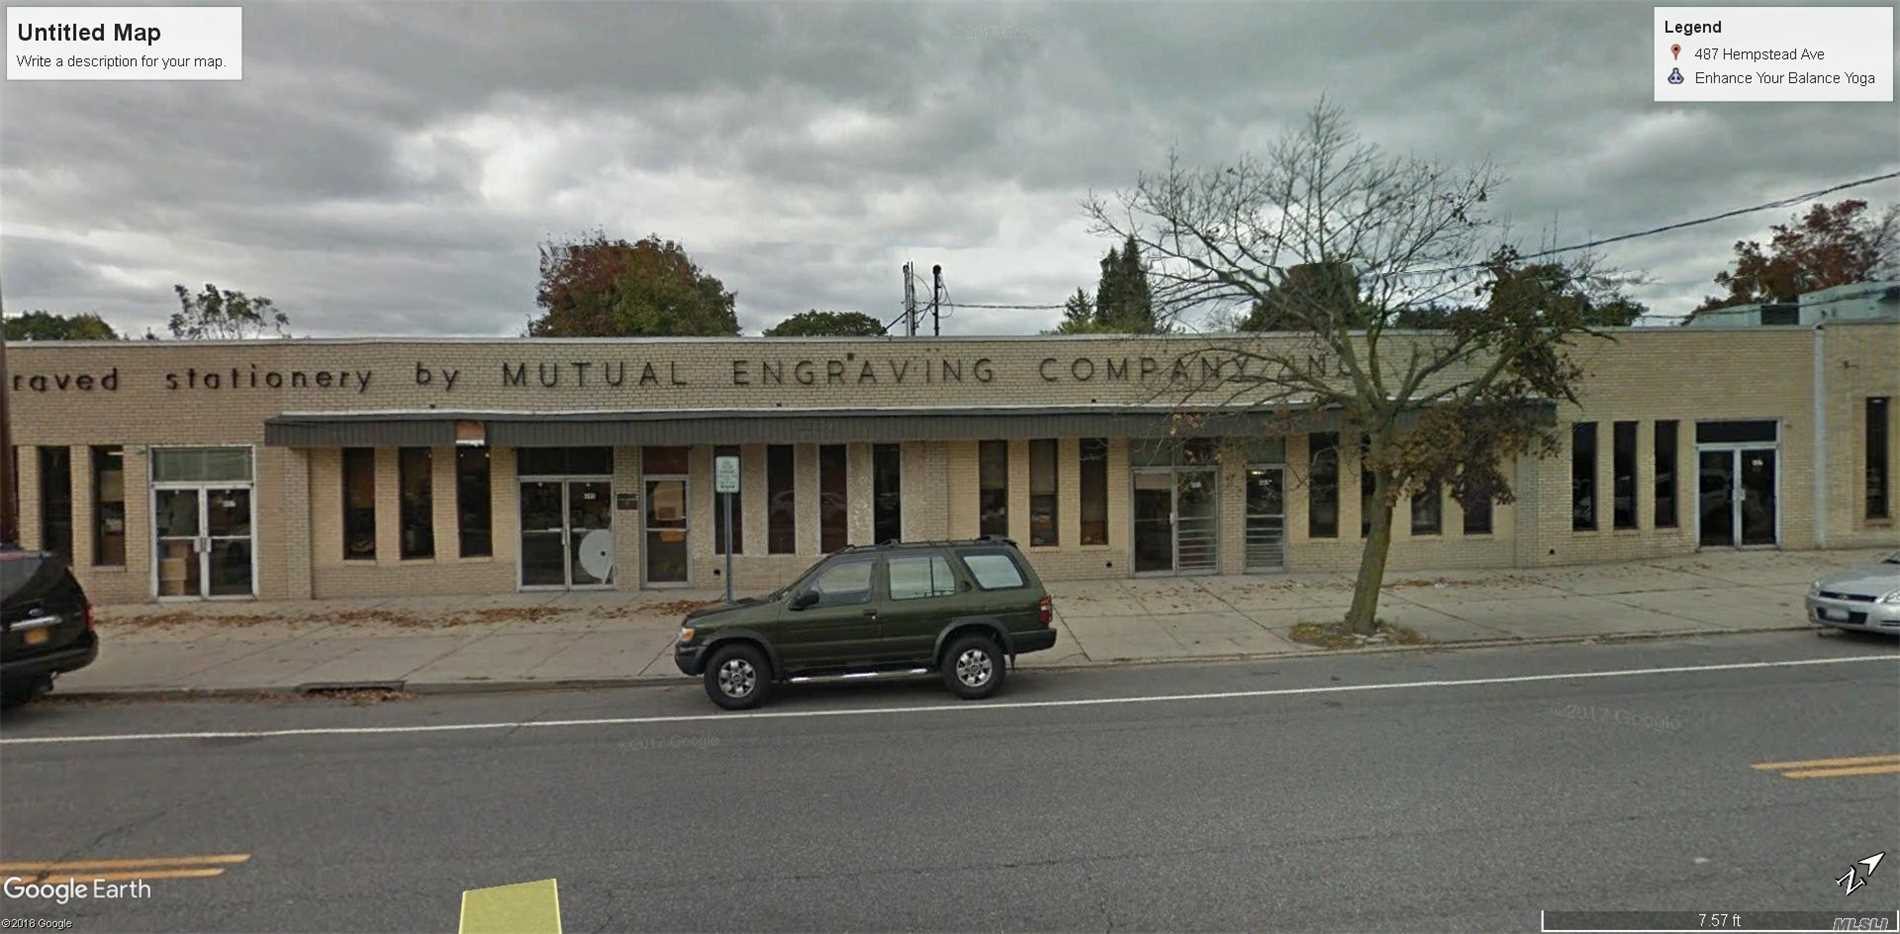 Acquisto commerciale in 487-503 Hempstead Ave, W. Hempstead, NY ,11552